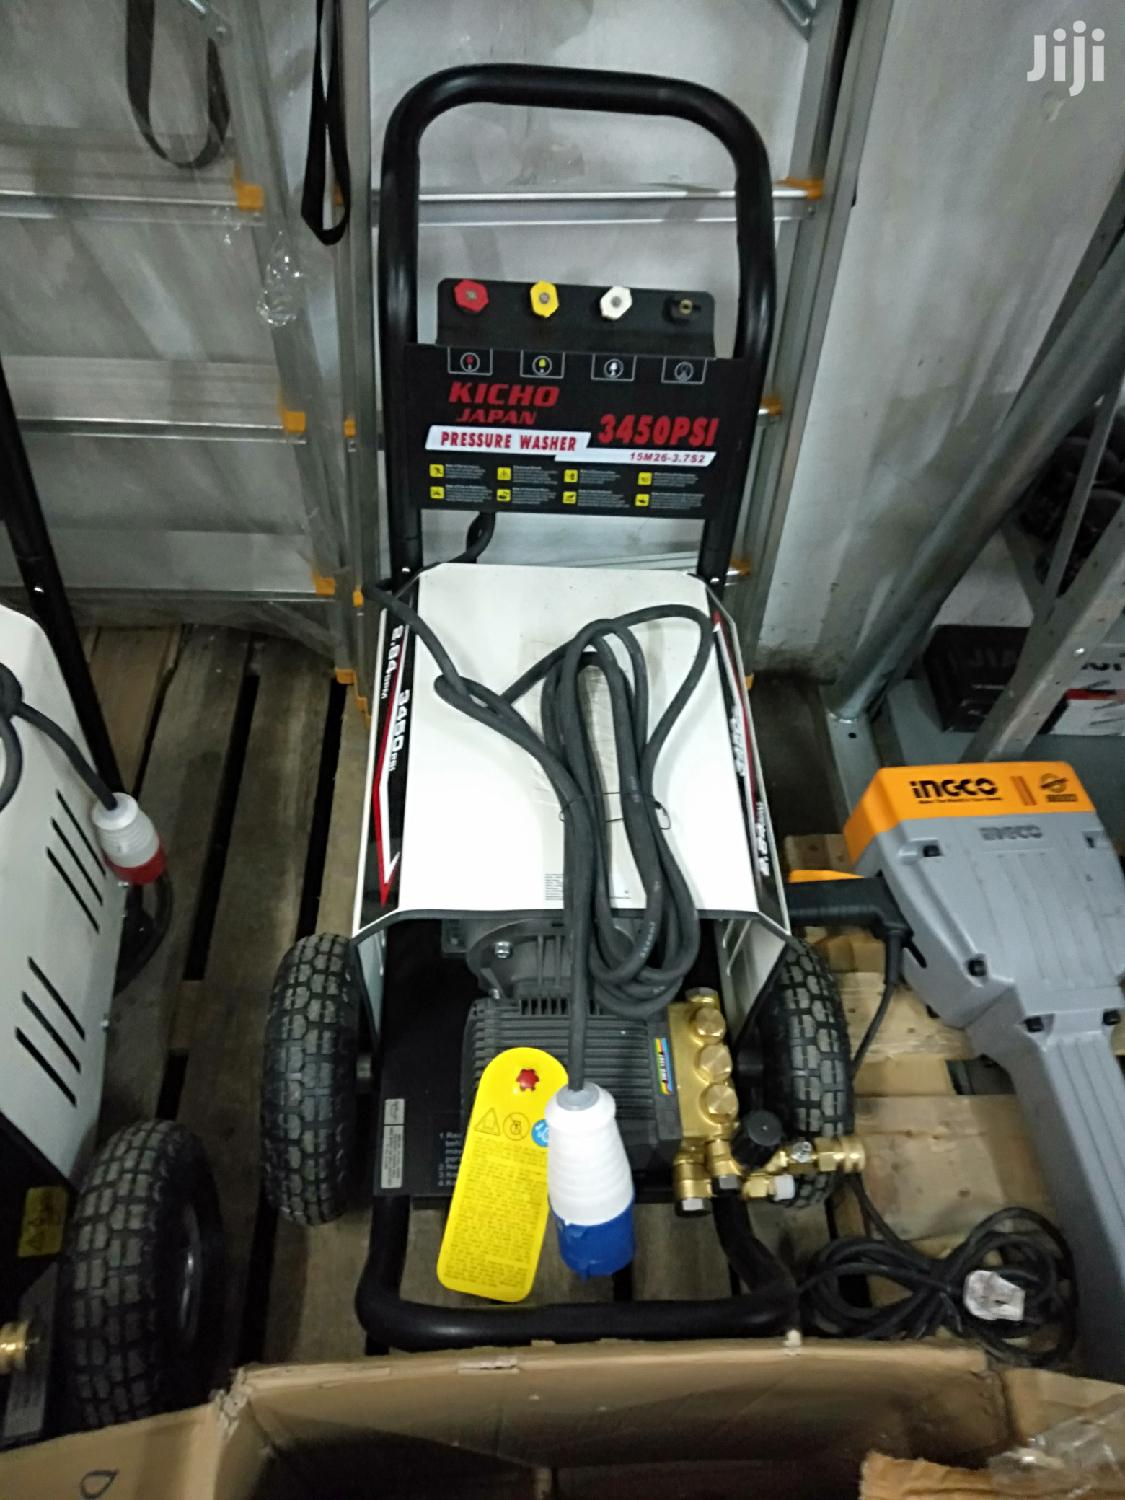 Kicho 3450psi High Pressure Washer Machine